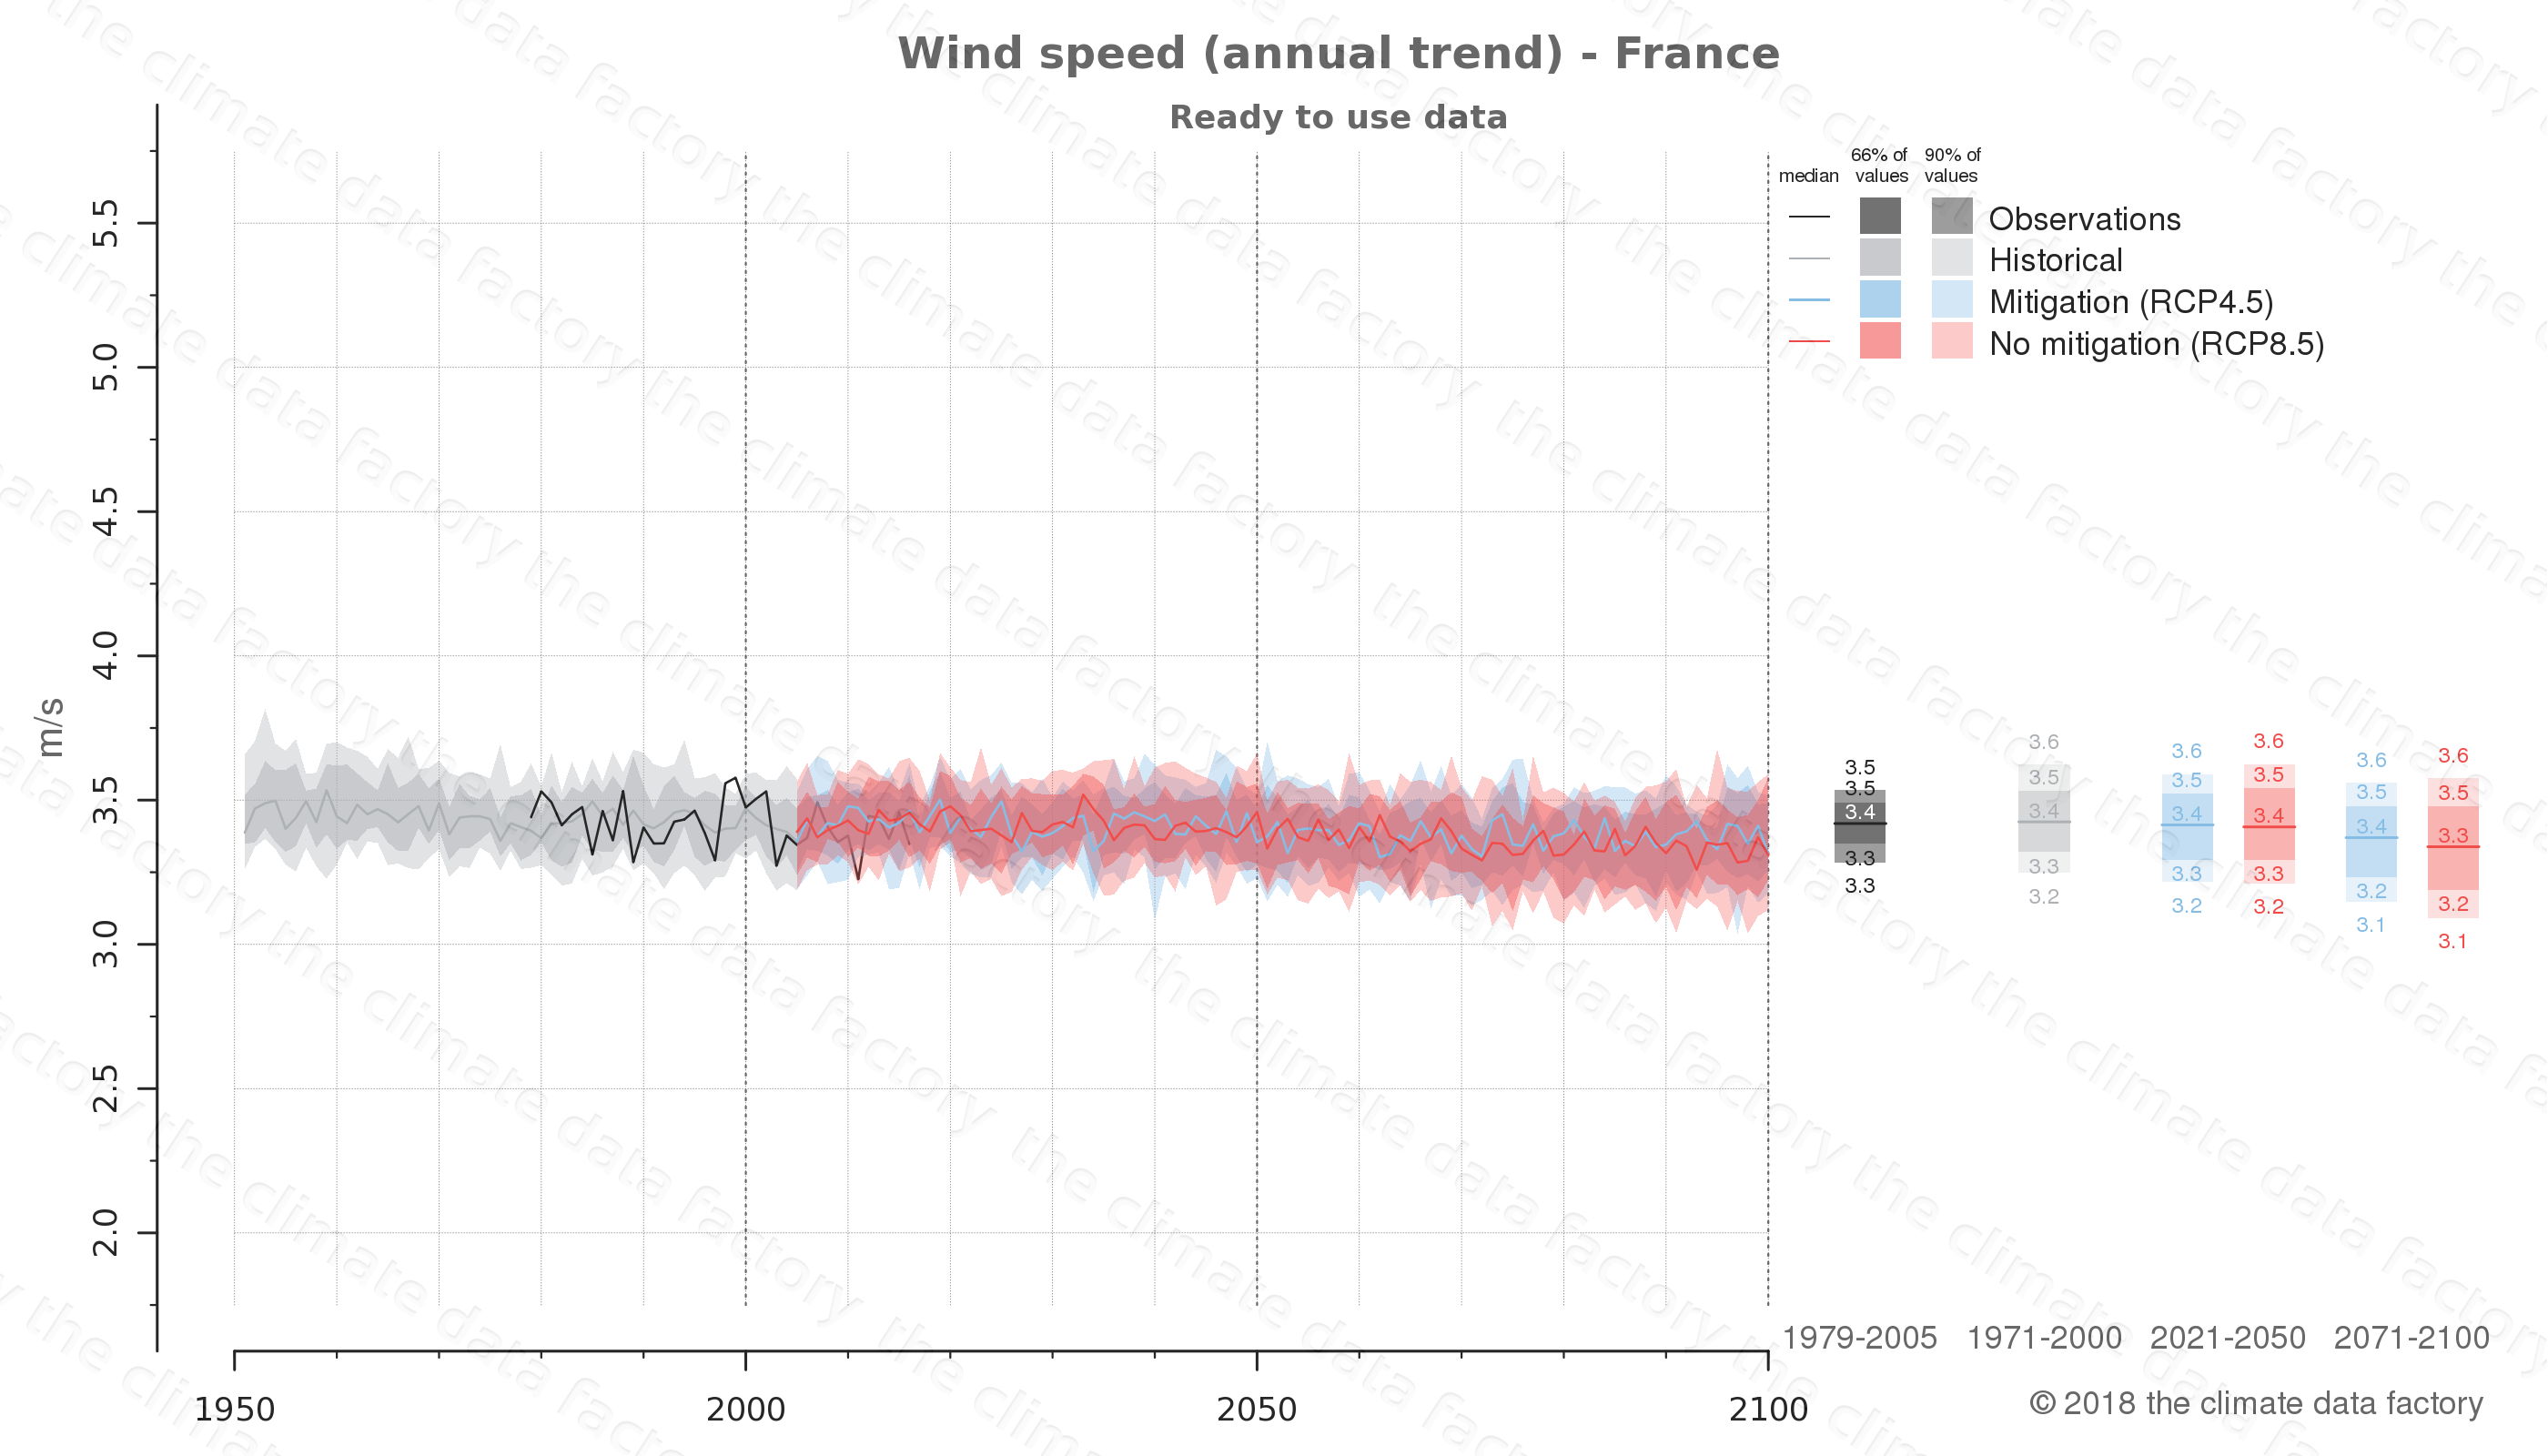 climate change data policy adaptation climate graph country data wind speed france europe